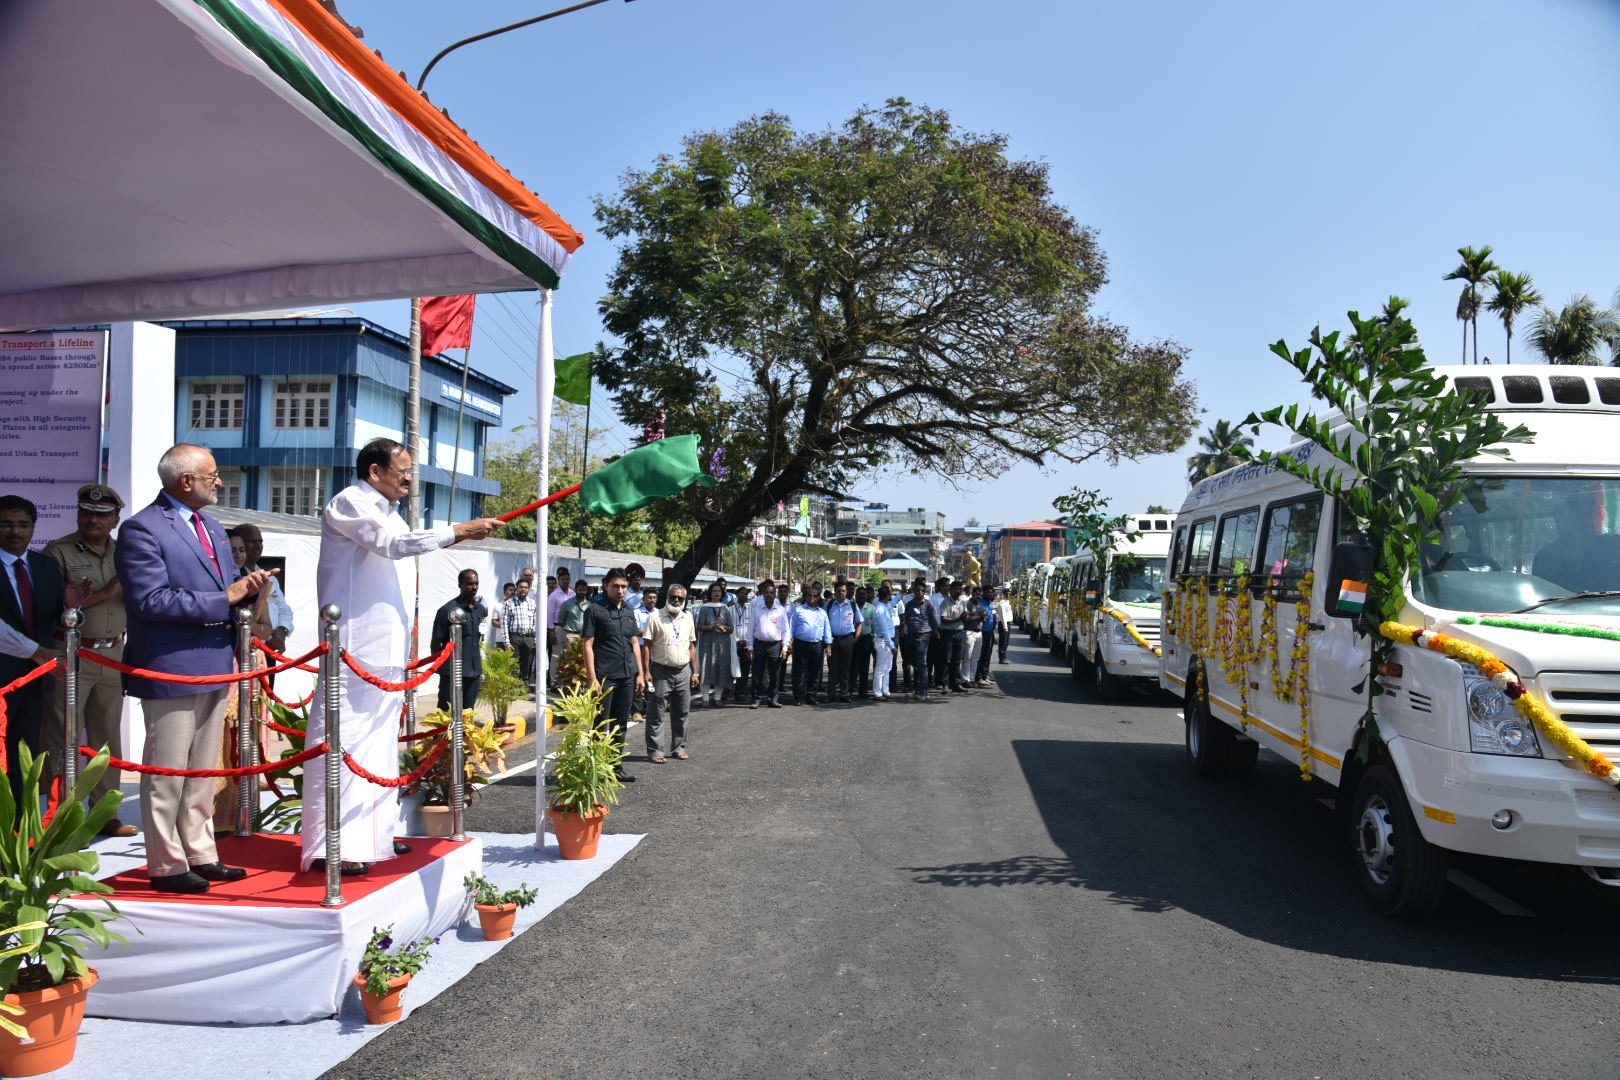 The Vice President, Shri M. Venkaiah Naidu flagging off AC buses and e-autos in Port Blair, Andaman and Nicobar on January 17, 2020.